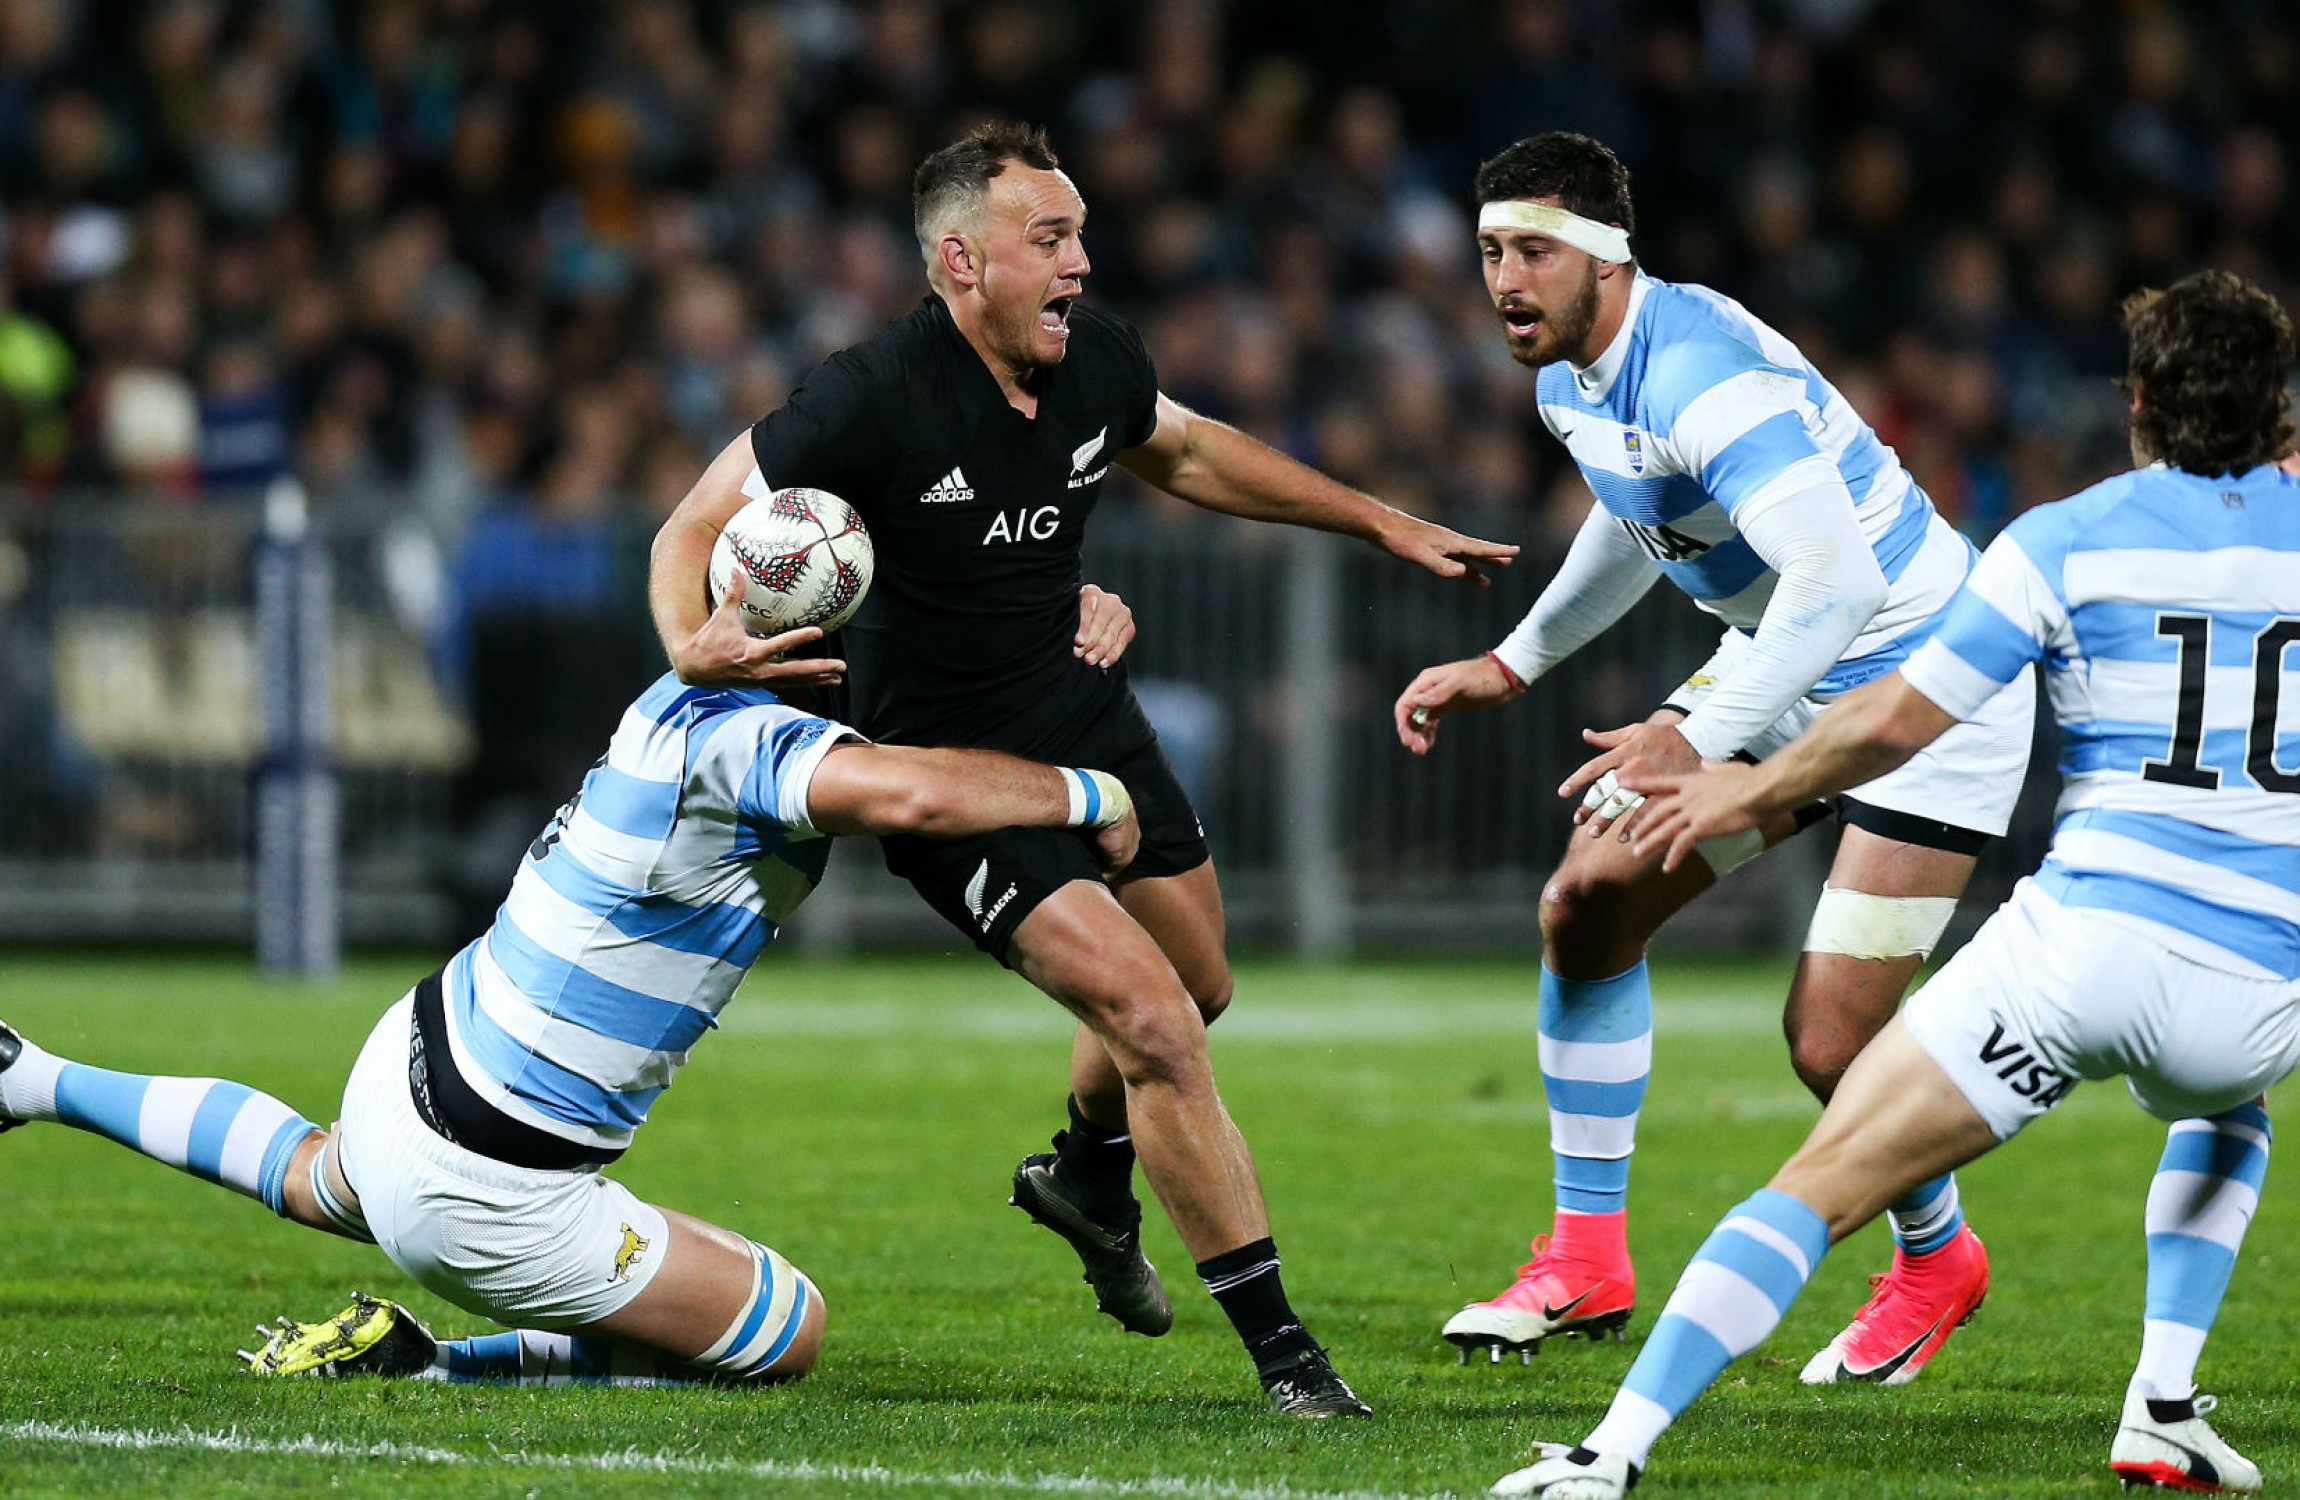 New Zealand back Israel Dagg sidelined for season